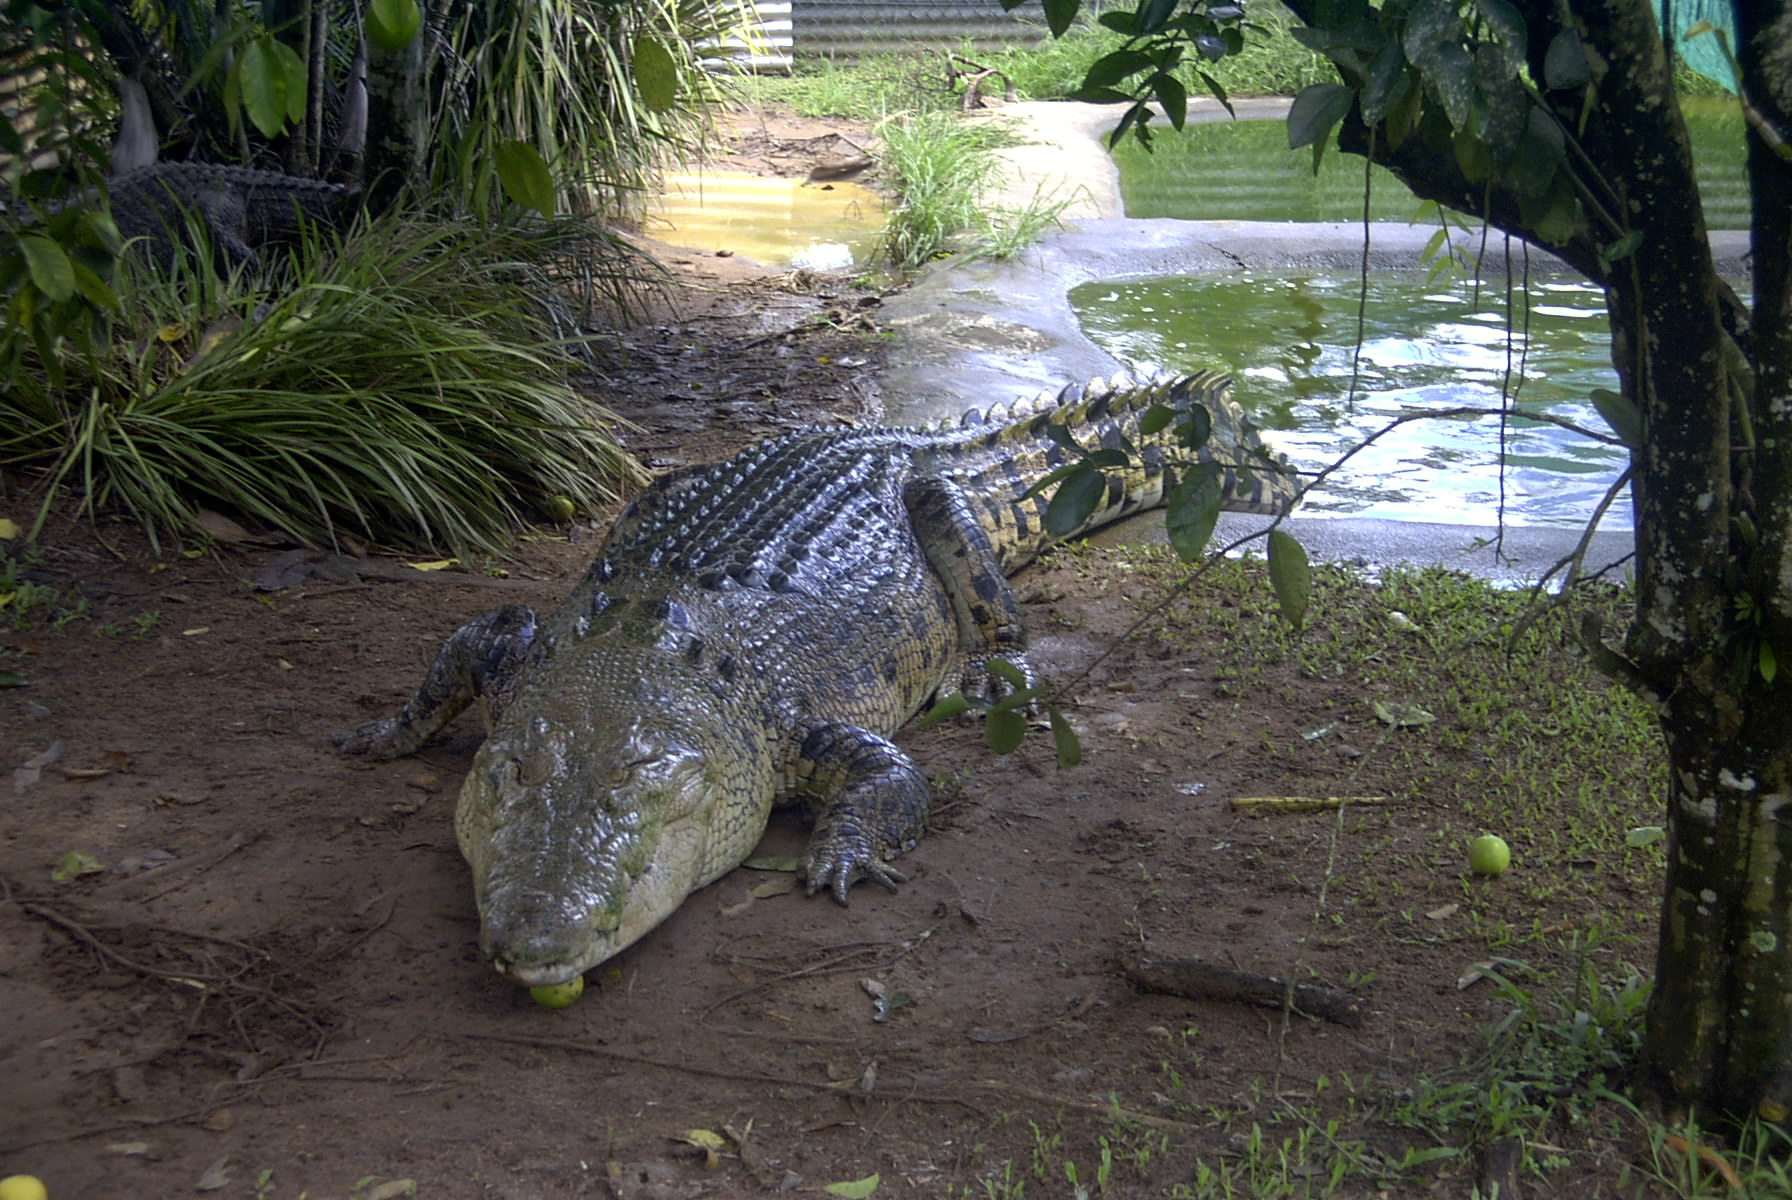 australian saltwater crocodiles Marine biologists have been pondering a particularly painful-sounding question: how hard do alligators and crocodiles bite the answer is a bite force value of 3,700 pounds for a 17-foot.